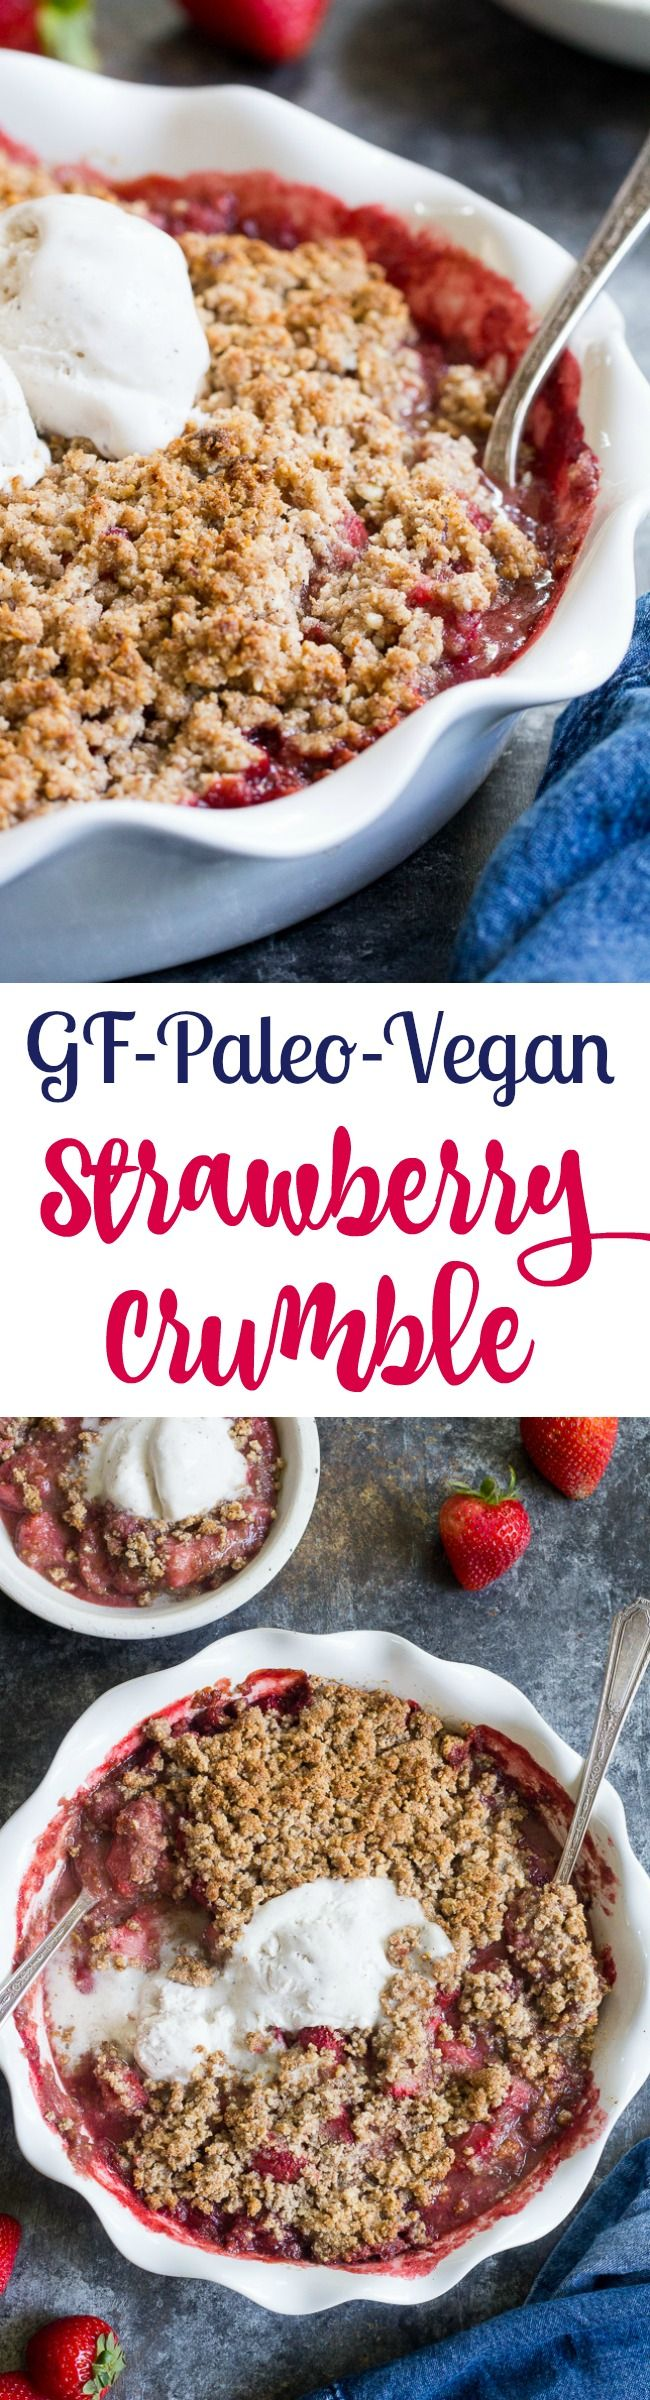 This paleo & vegan strawberry crumble couldn't be easier or more delicious! Made without refined sugar, grains, or dairy, it's a healthy summer dessert that will make everyone happy. A big scoop of coconut vanilla ice cream makes it the perfect treat! Gluten-free, dairy-free, paleo and vegan.